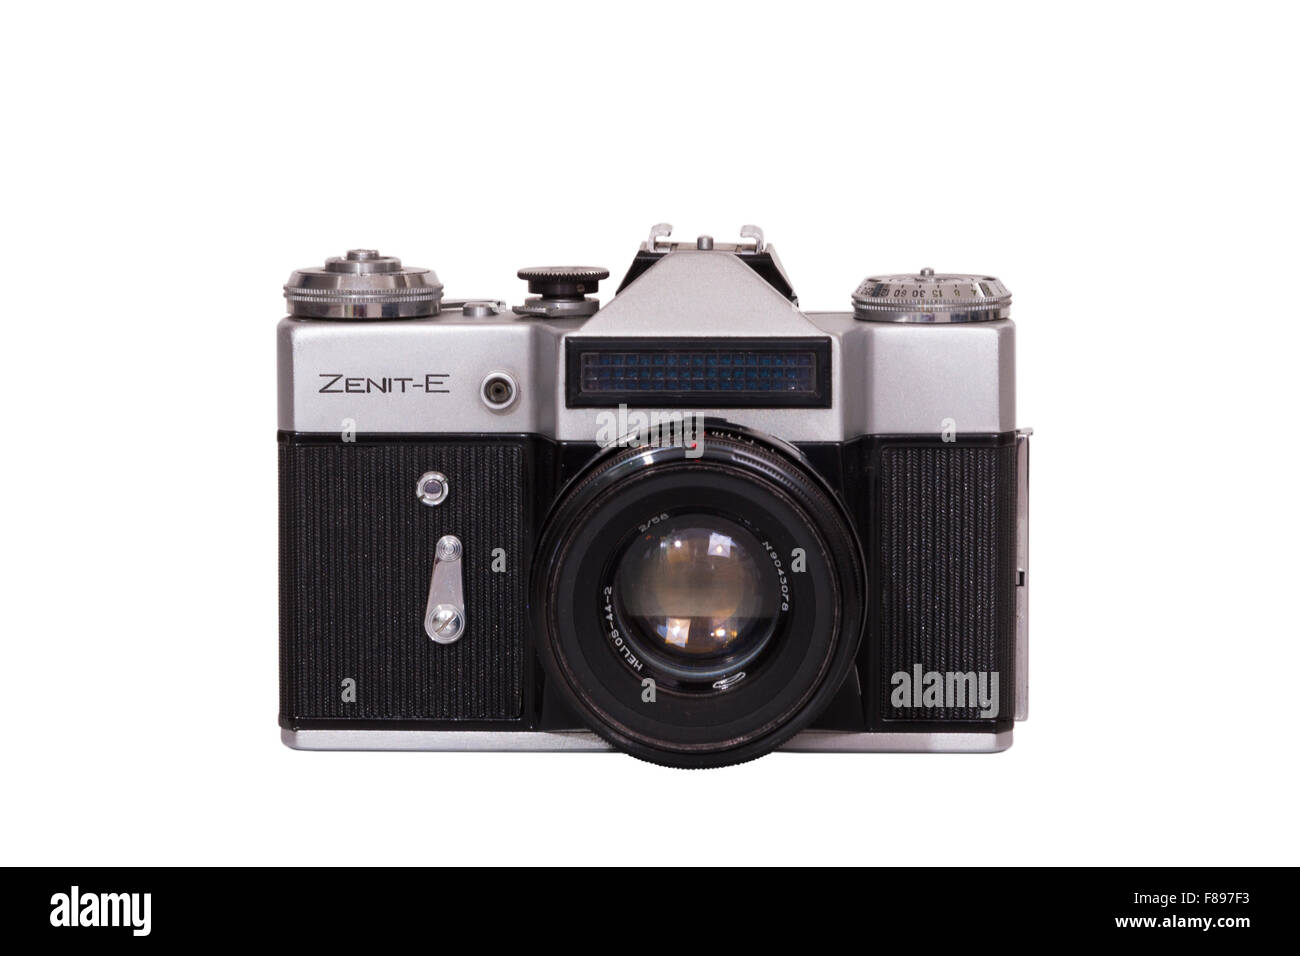 Zenith E / Zenit E single lens reflex SLR from Soviet Union Russia / USSR / Russian made classic amateur 35mm manual - Stock Image